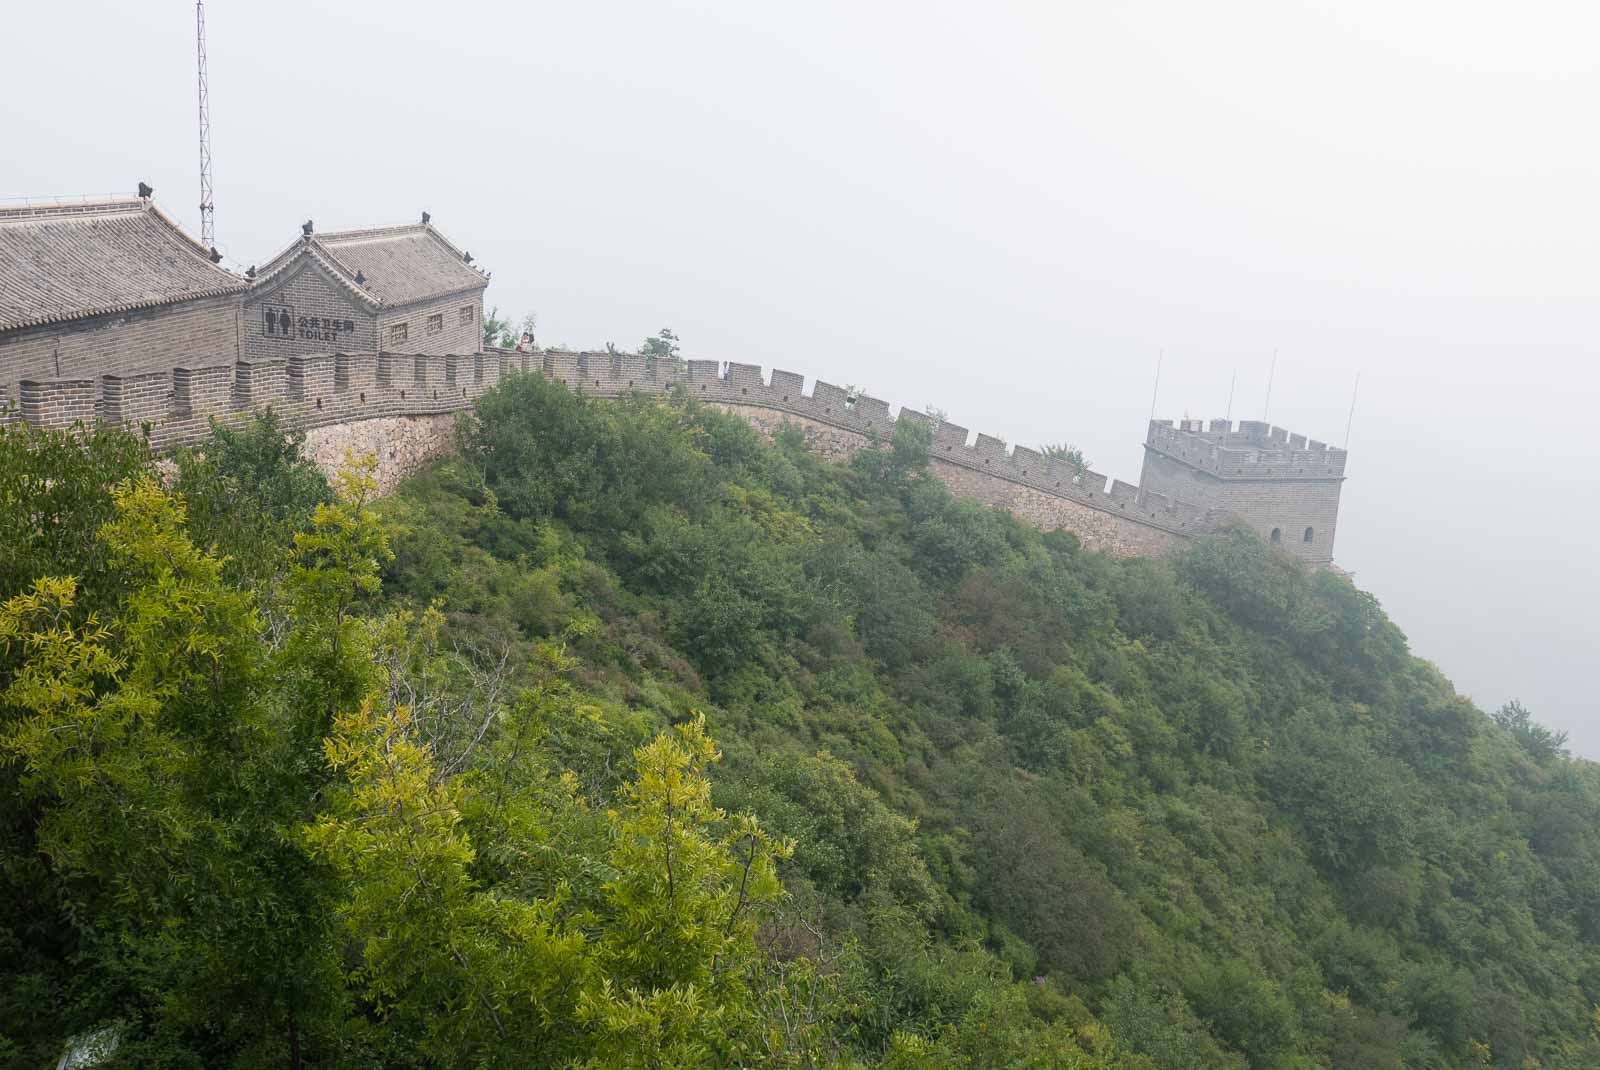 Great Wall of China, shrouded in mist and surrounded by greenery.